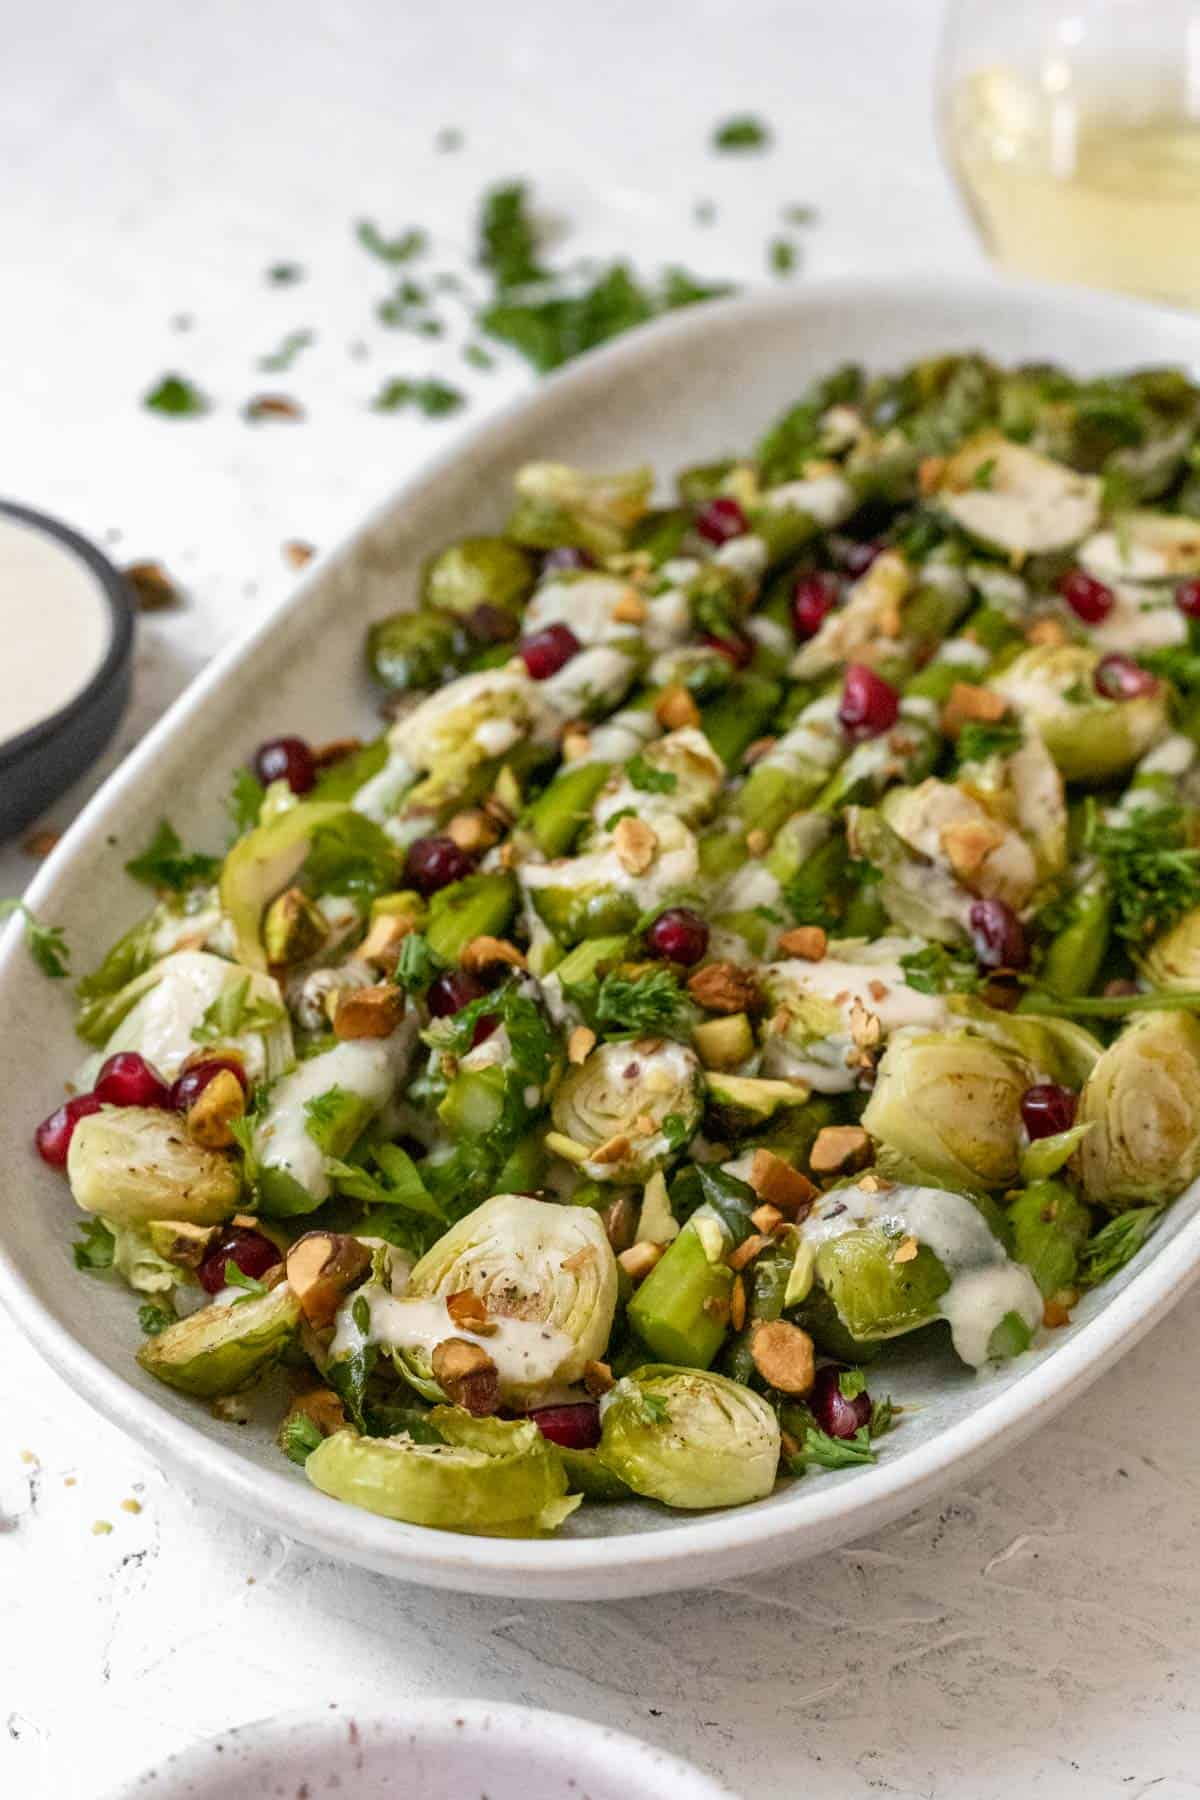 Side view of asparagus, brussels sprouts, lemon tahini sauce, pistachios, and pomegranate seeds on an oval platter.